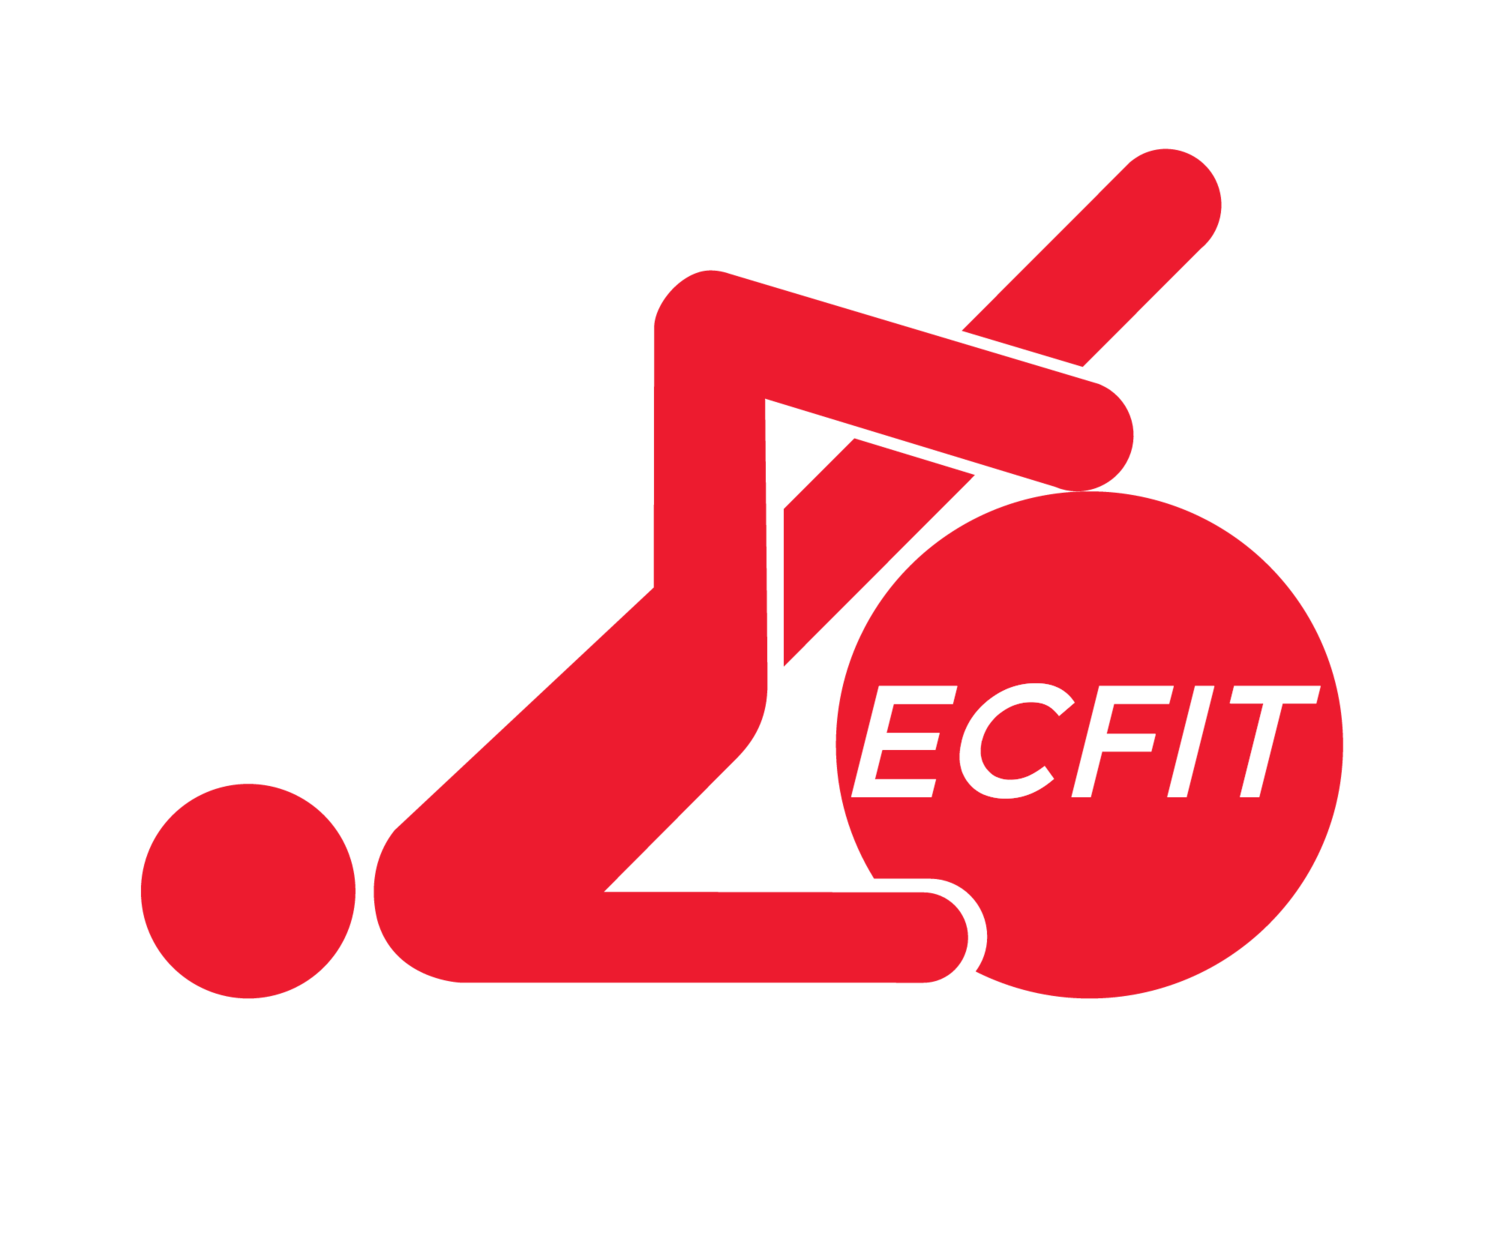 Endurance Specific Strength Consulting